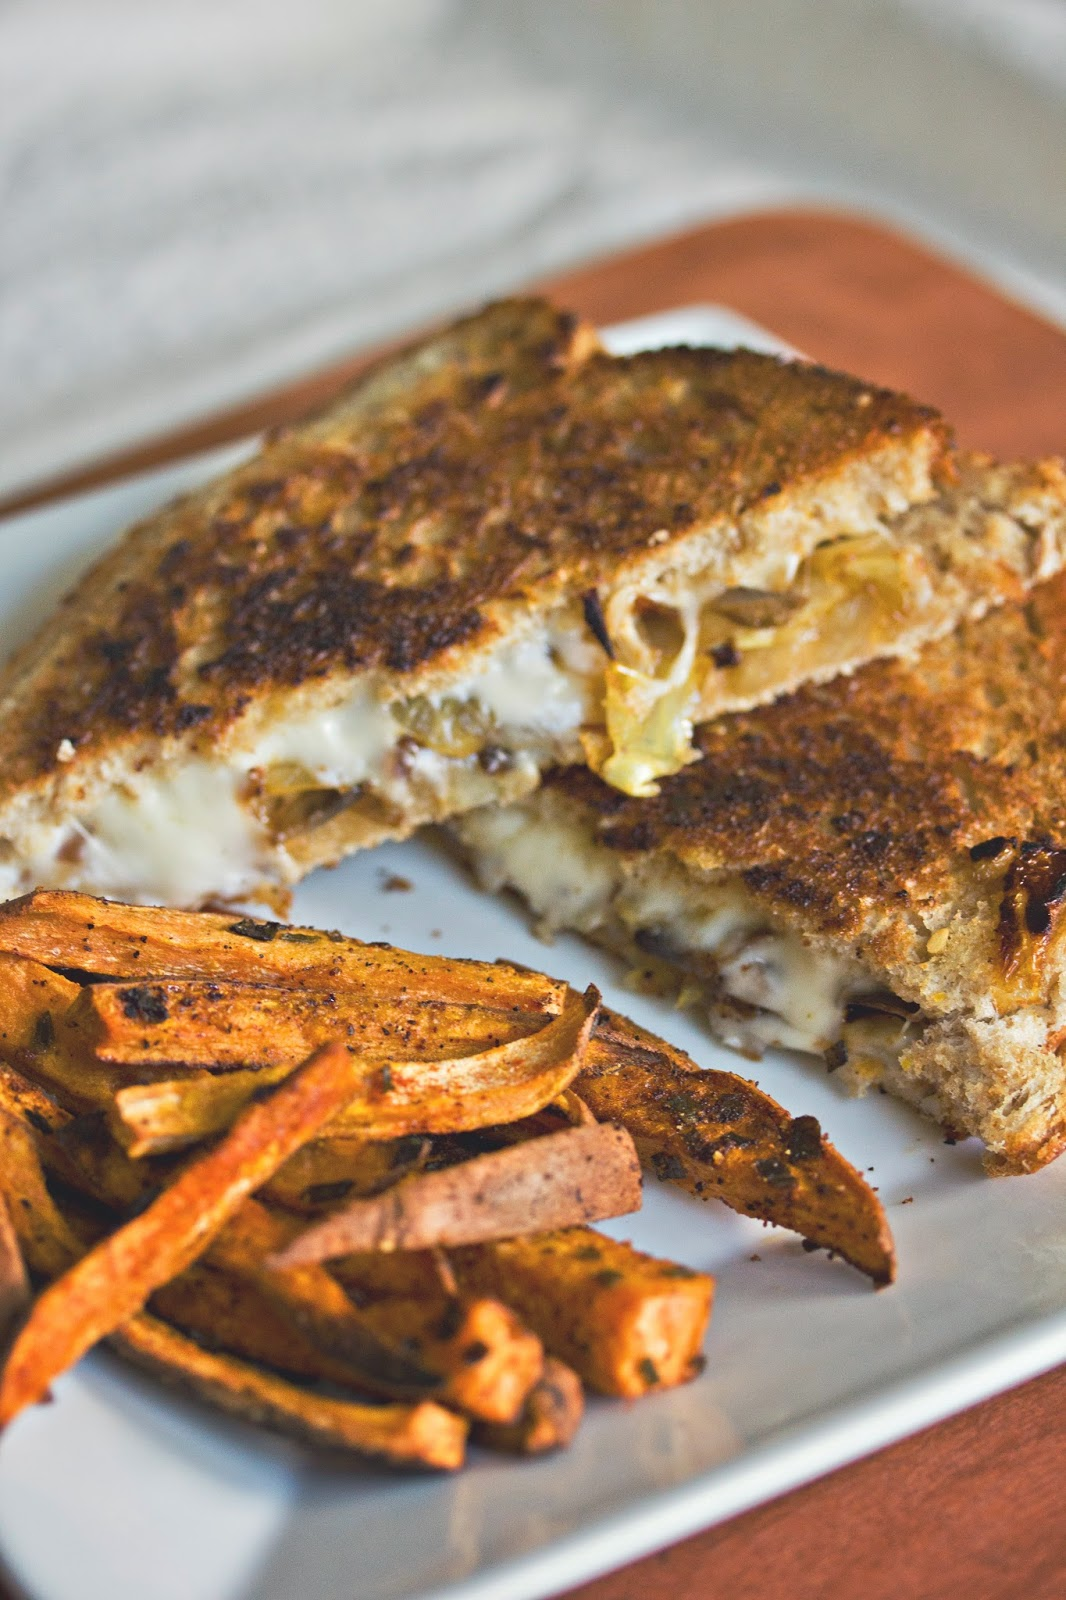 maede.for.you.: Caramelized Onion & Mushroom Grilled ...